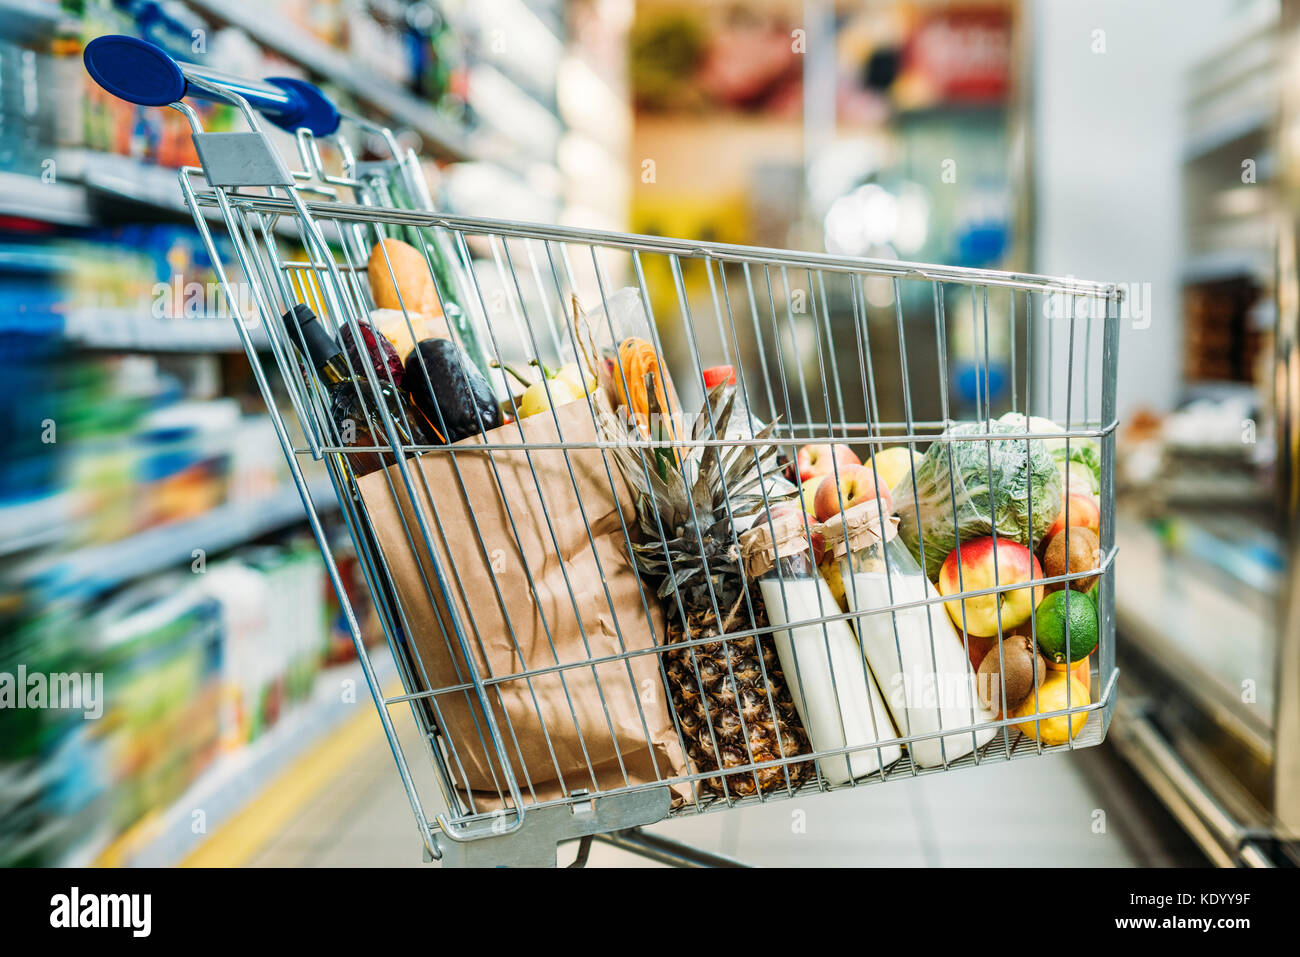 shopping cart with purchases in supermarket - Stock Image